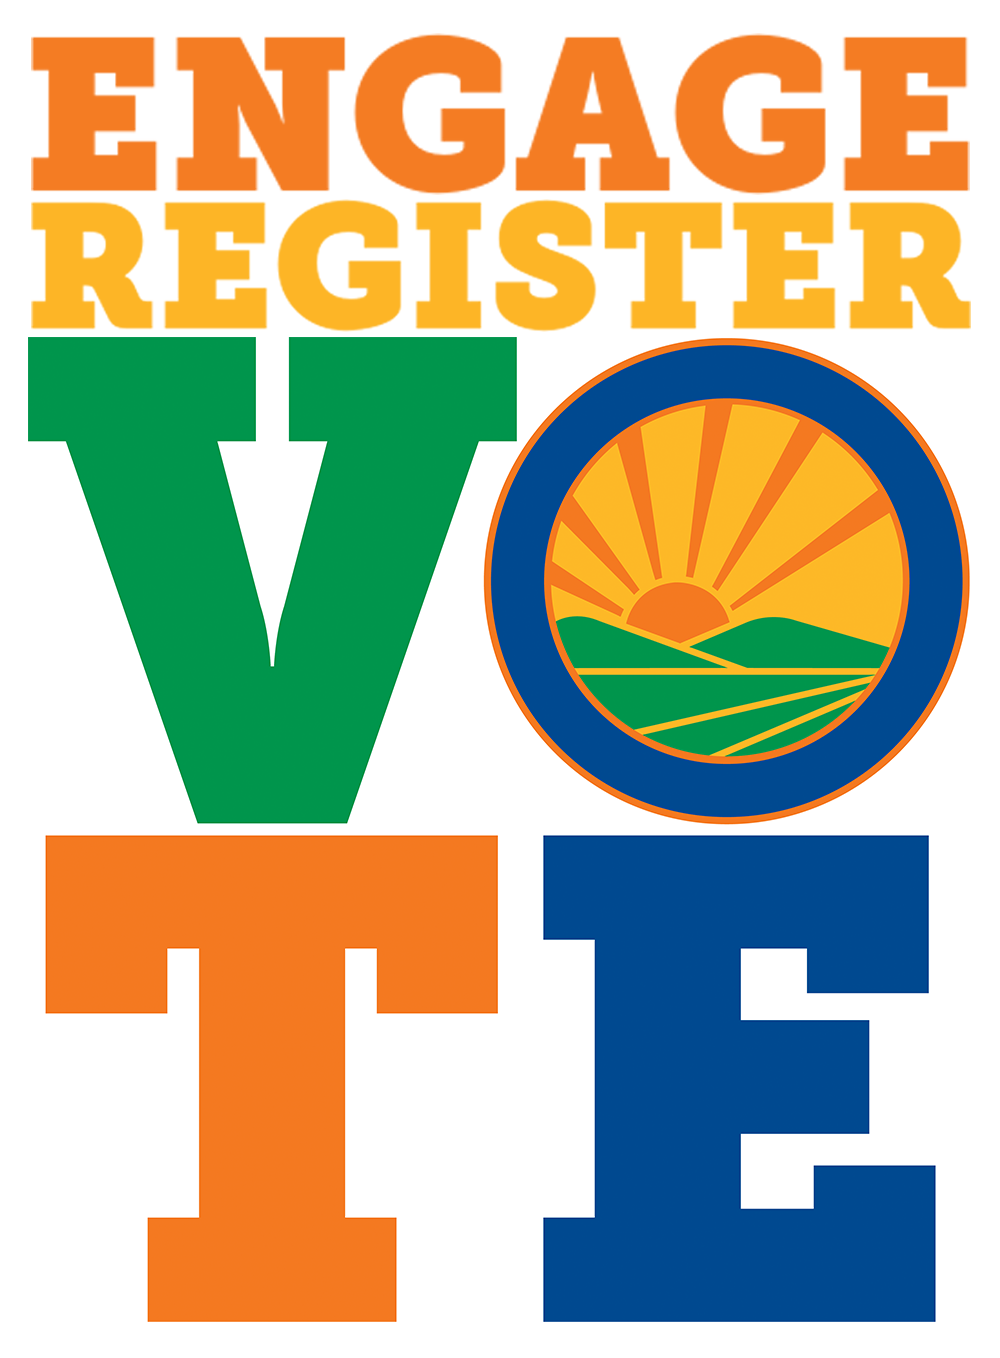 Engage Register To download register to vote PNG images